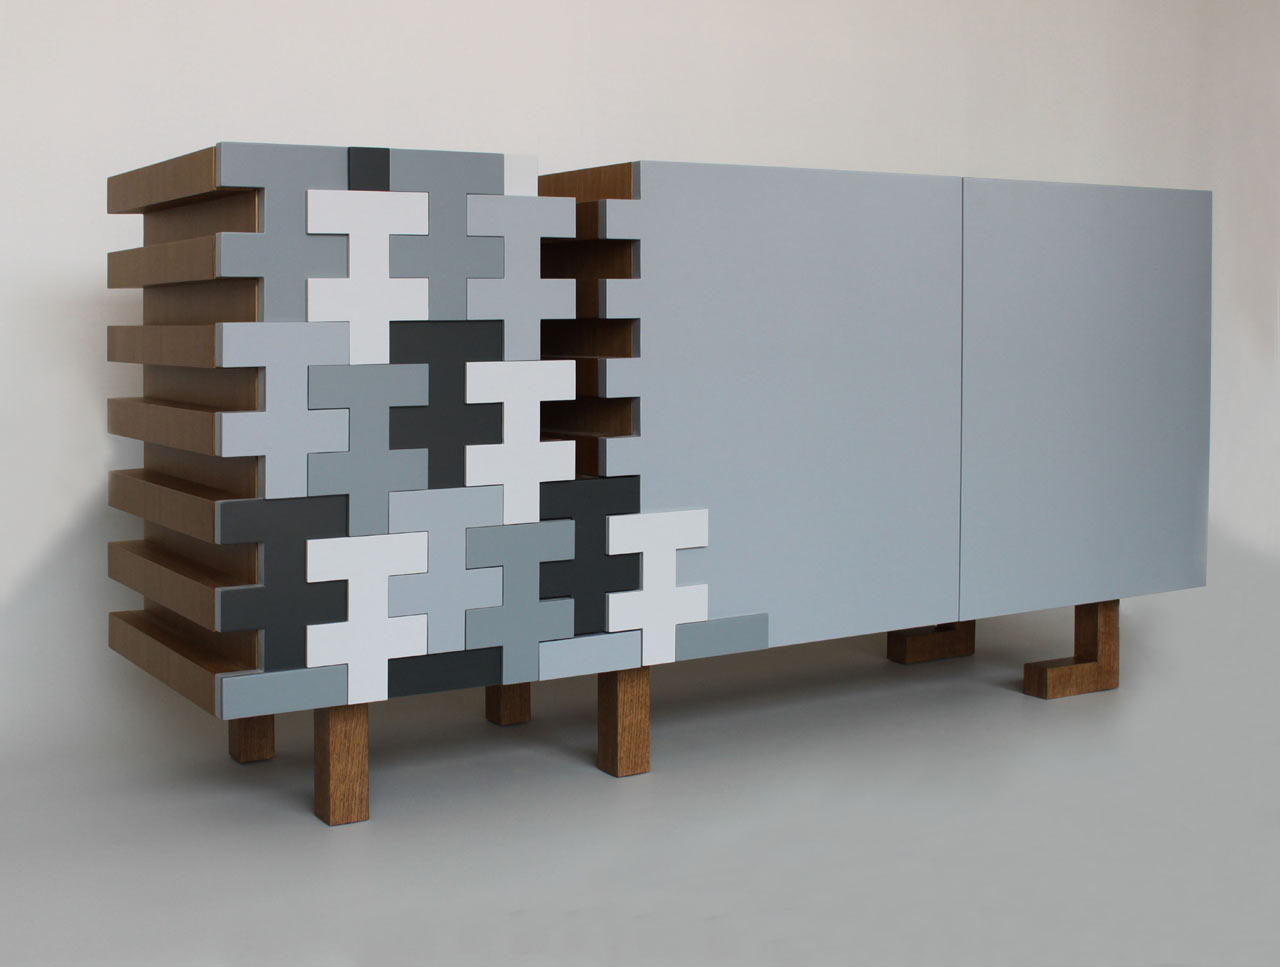 Taree Sideboard by Terezie Simonova for E1+E4